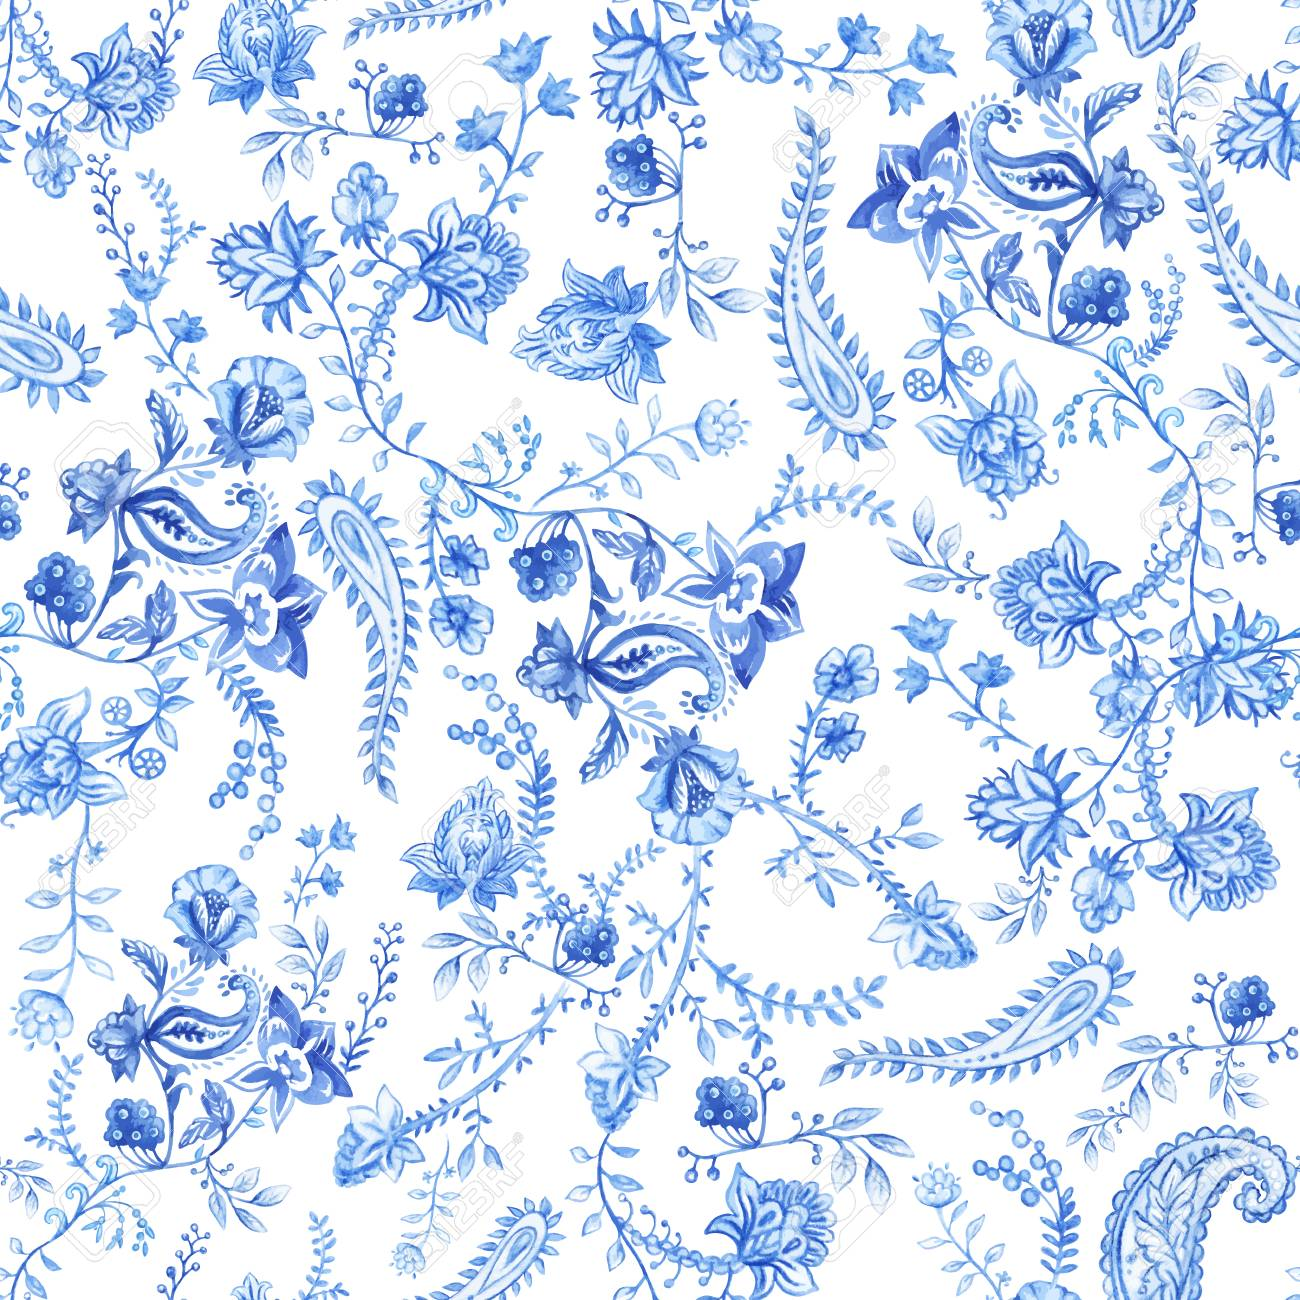 Blue And White Floral Wallpaper Floral Seamless Pattern In